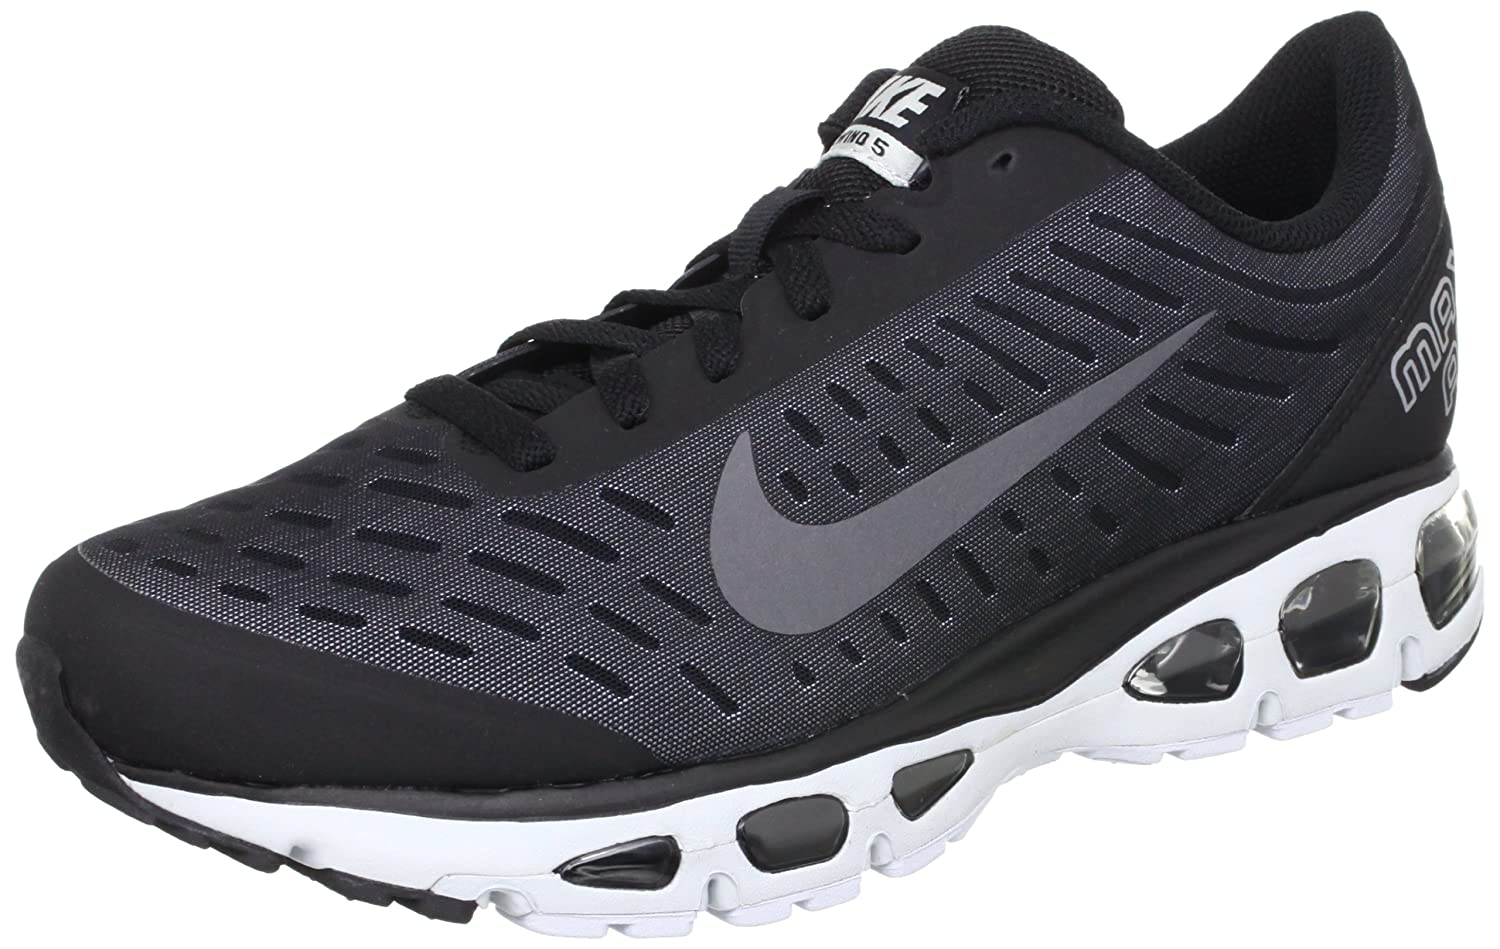 59b172af92 Nike Air Max Tailwind 5 + 555416001, Baskets Mode Homme - Taille 46:  Amazon.fr: Chaussures et Sacs